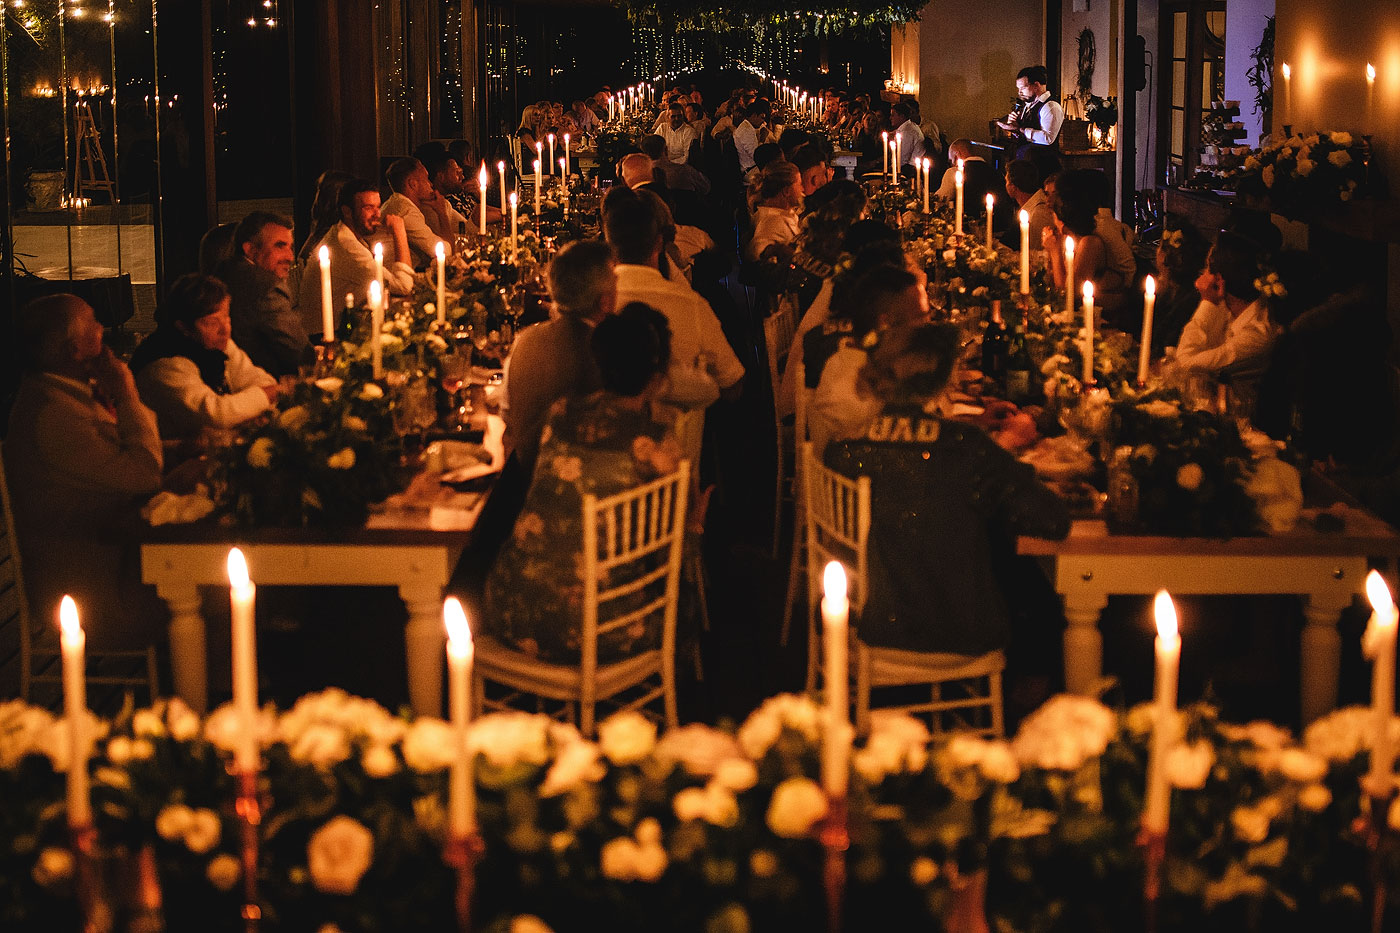 Groom speech with candles and guests listening